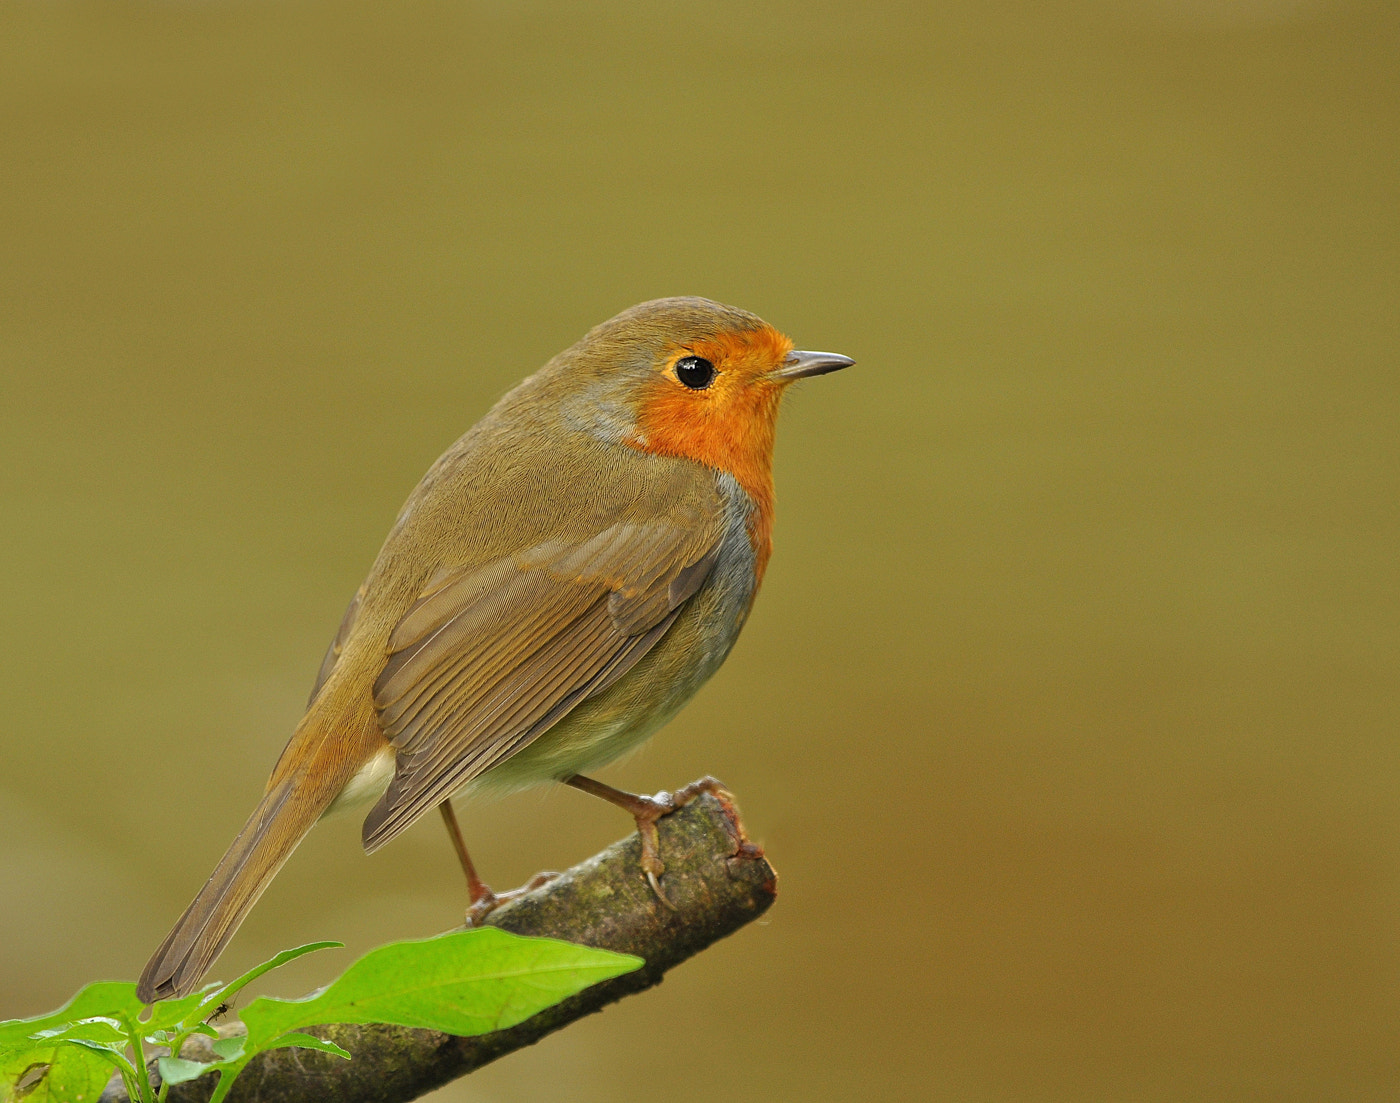 Photograph Robin Profile  by Keith Bannister on 500px